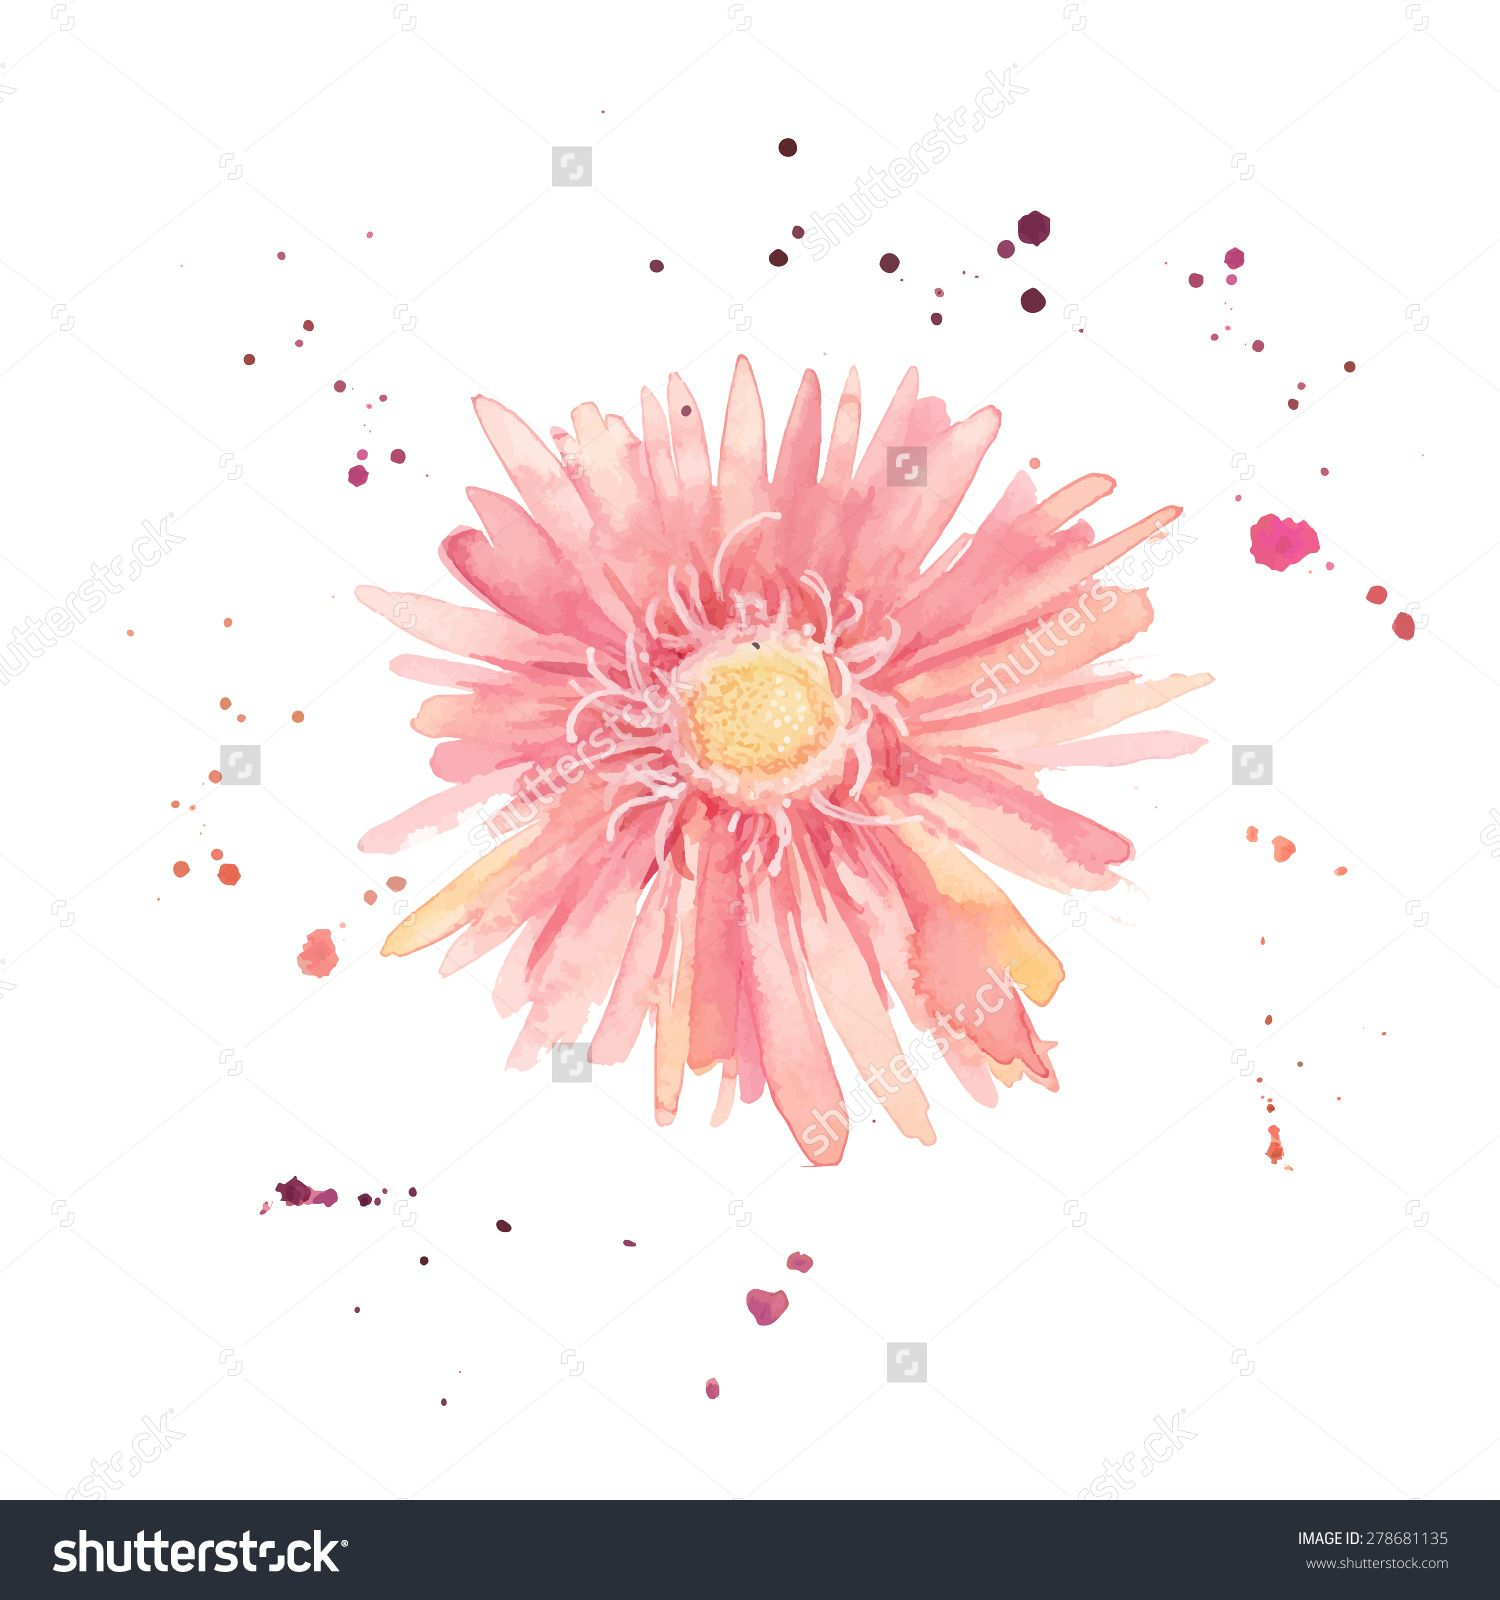 Watercolor Gerbera Single Flower With Paint Drops And Dots Hand